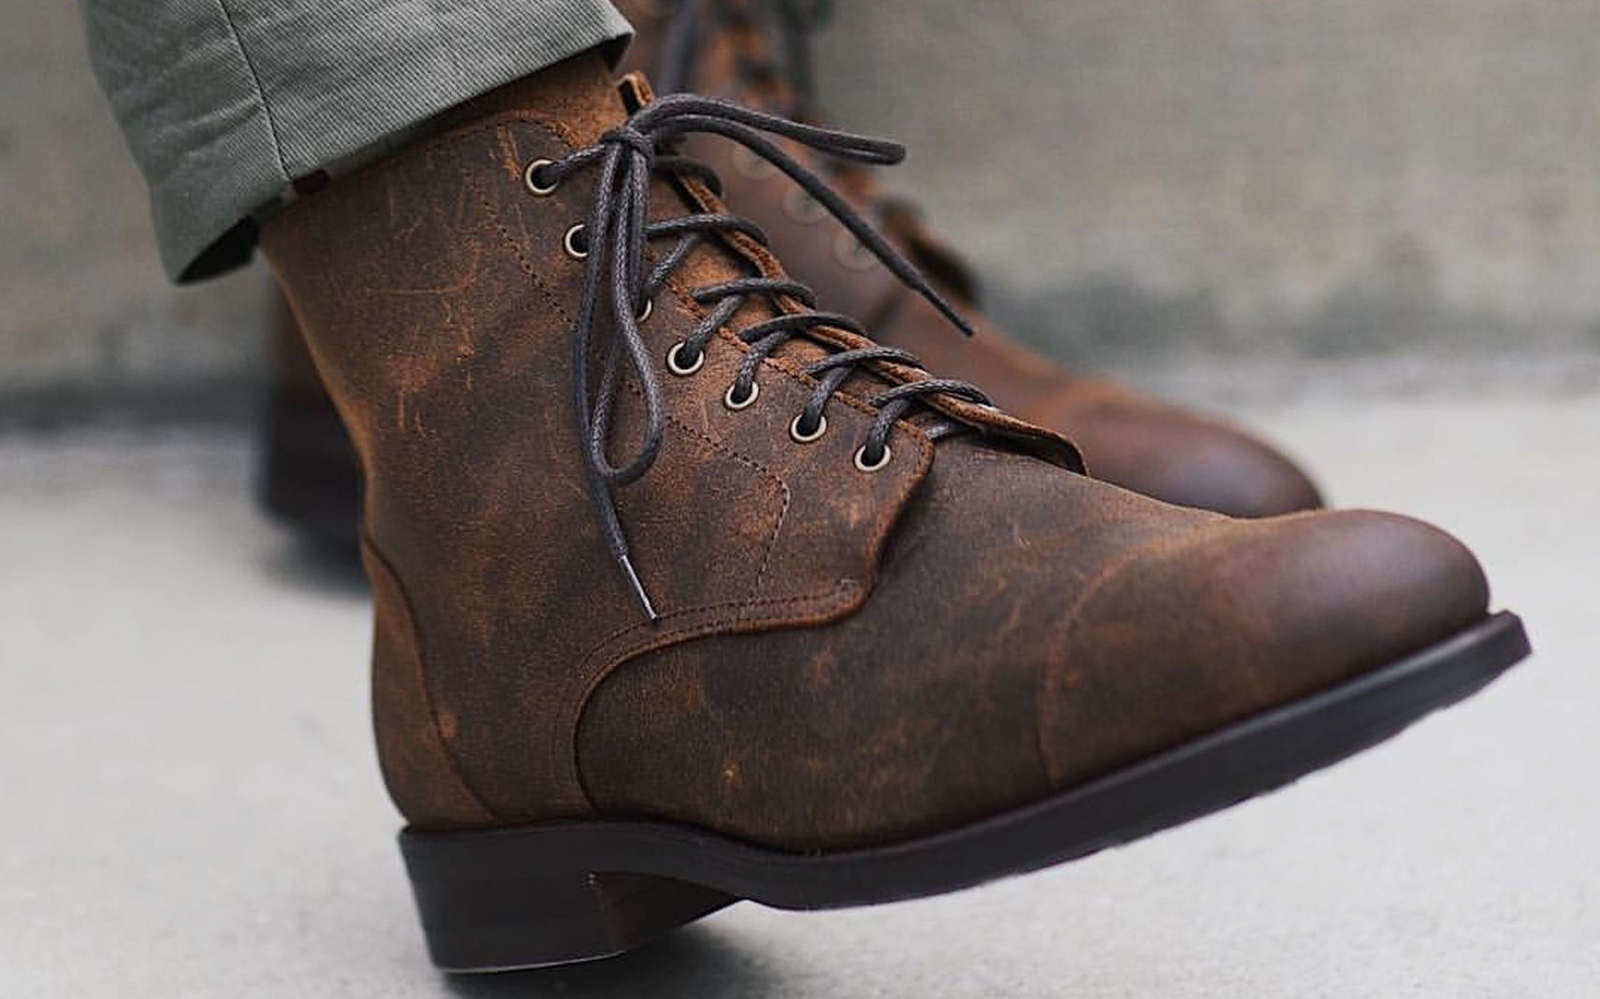 41aa063a65d Military Lace Up Boots - Ivoiregion